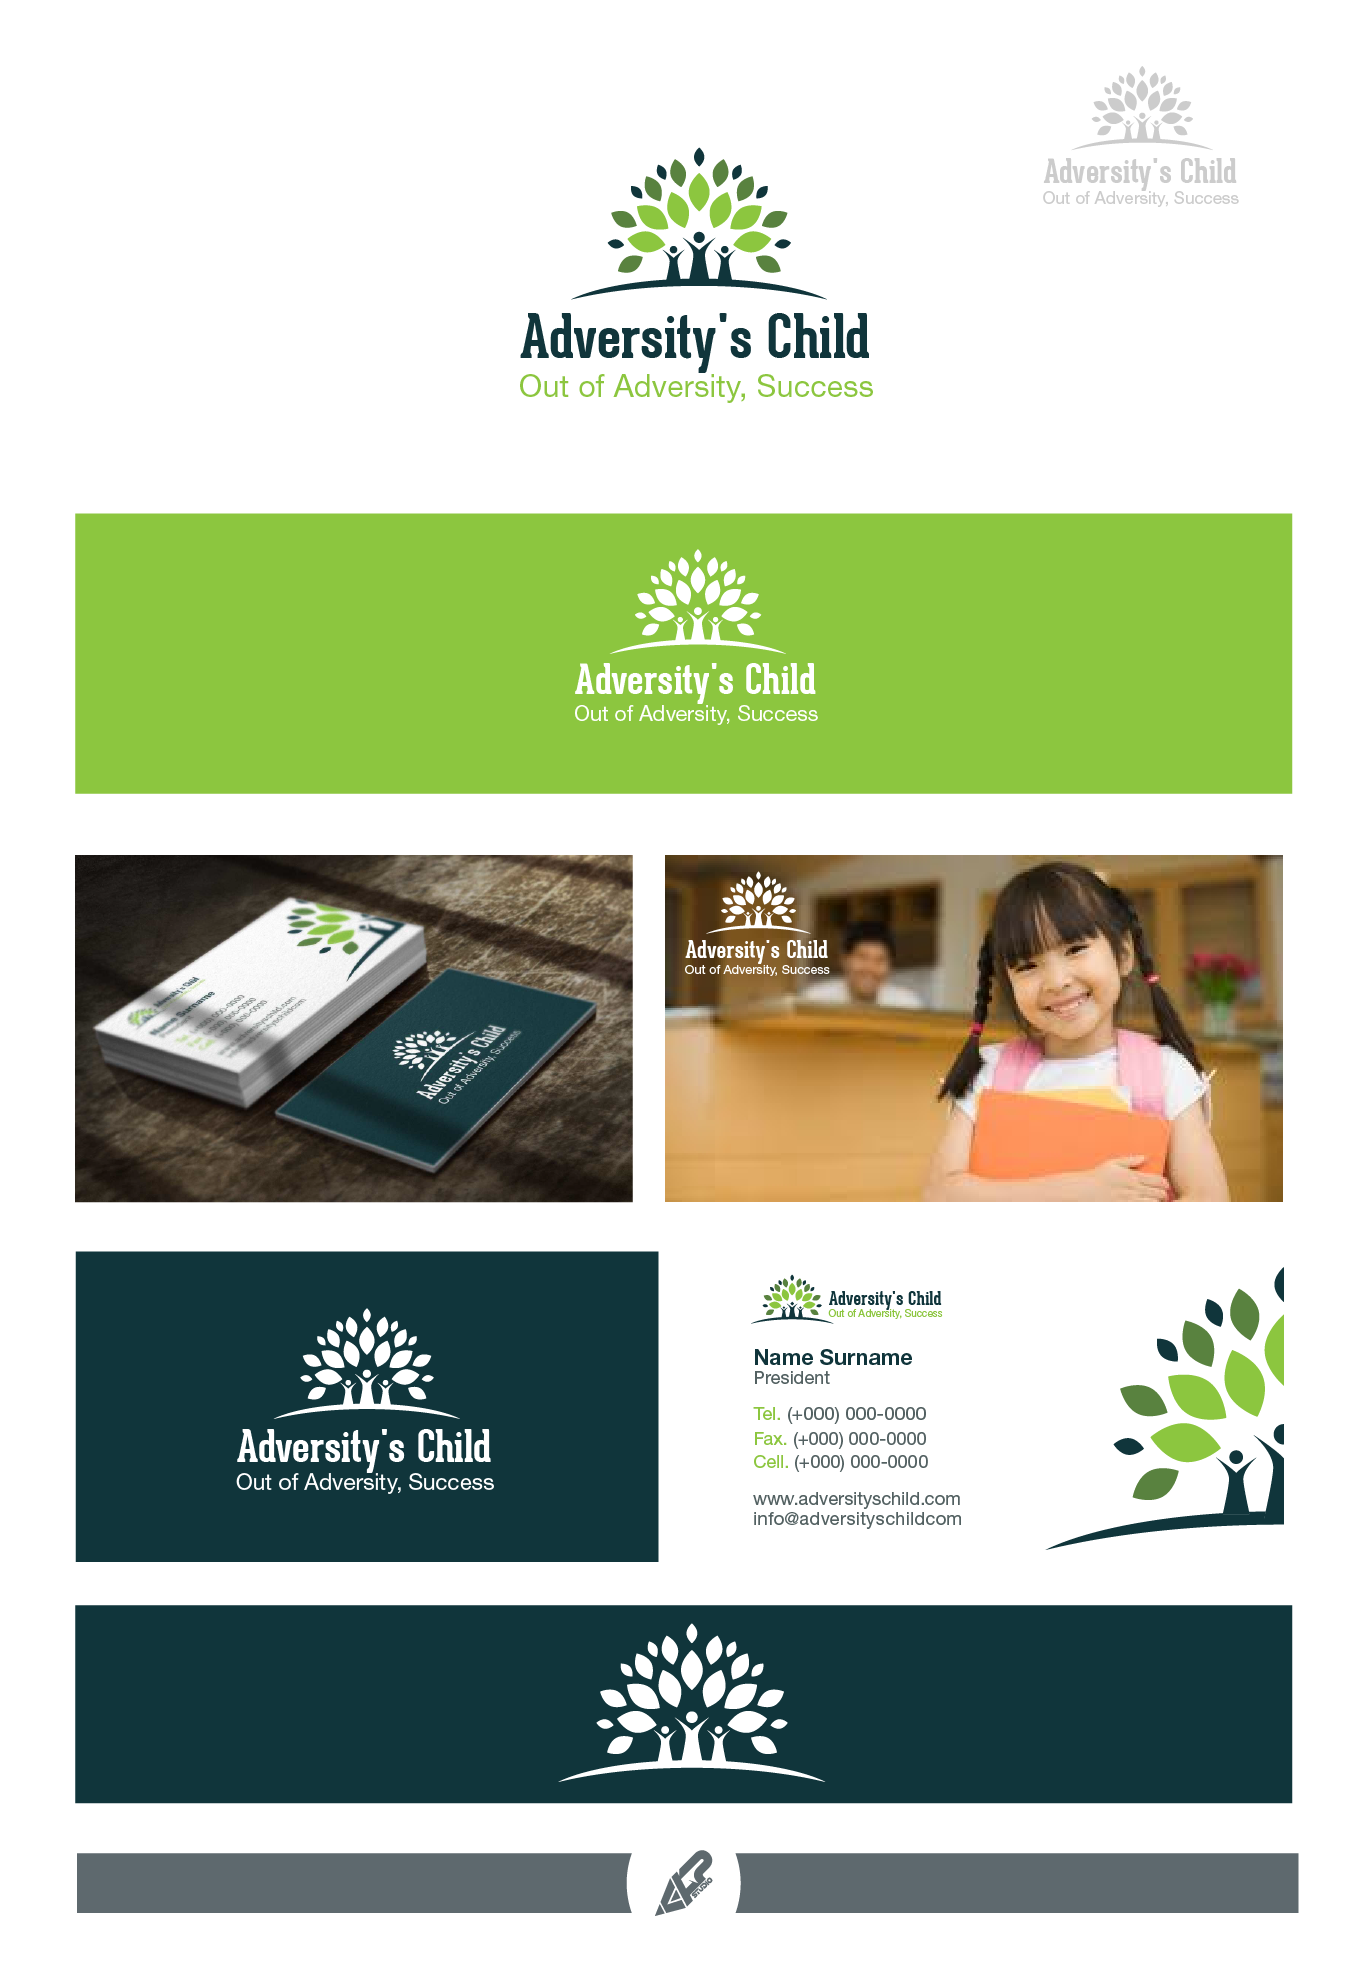 Help Adversity's Child with a new logo